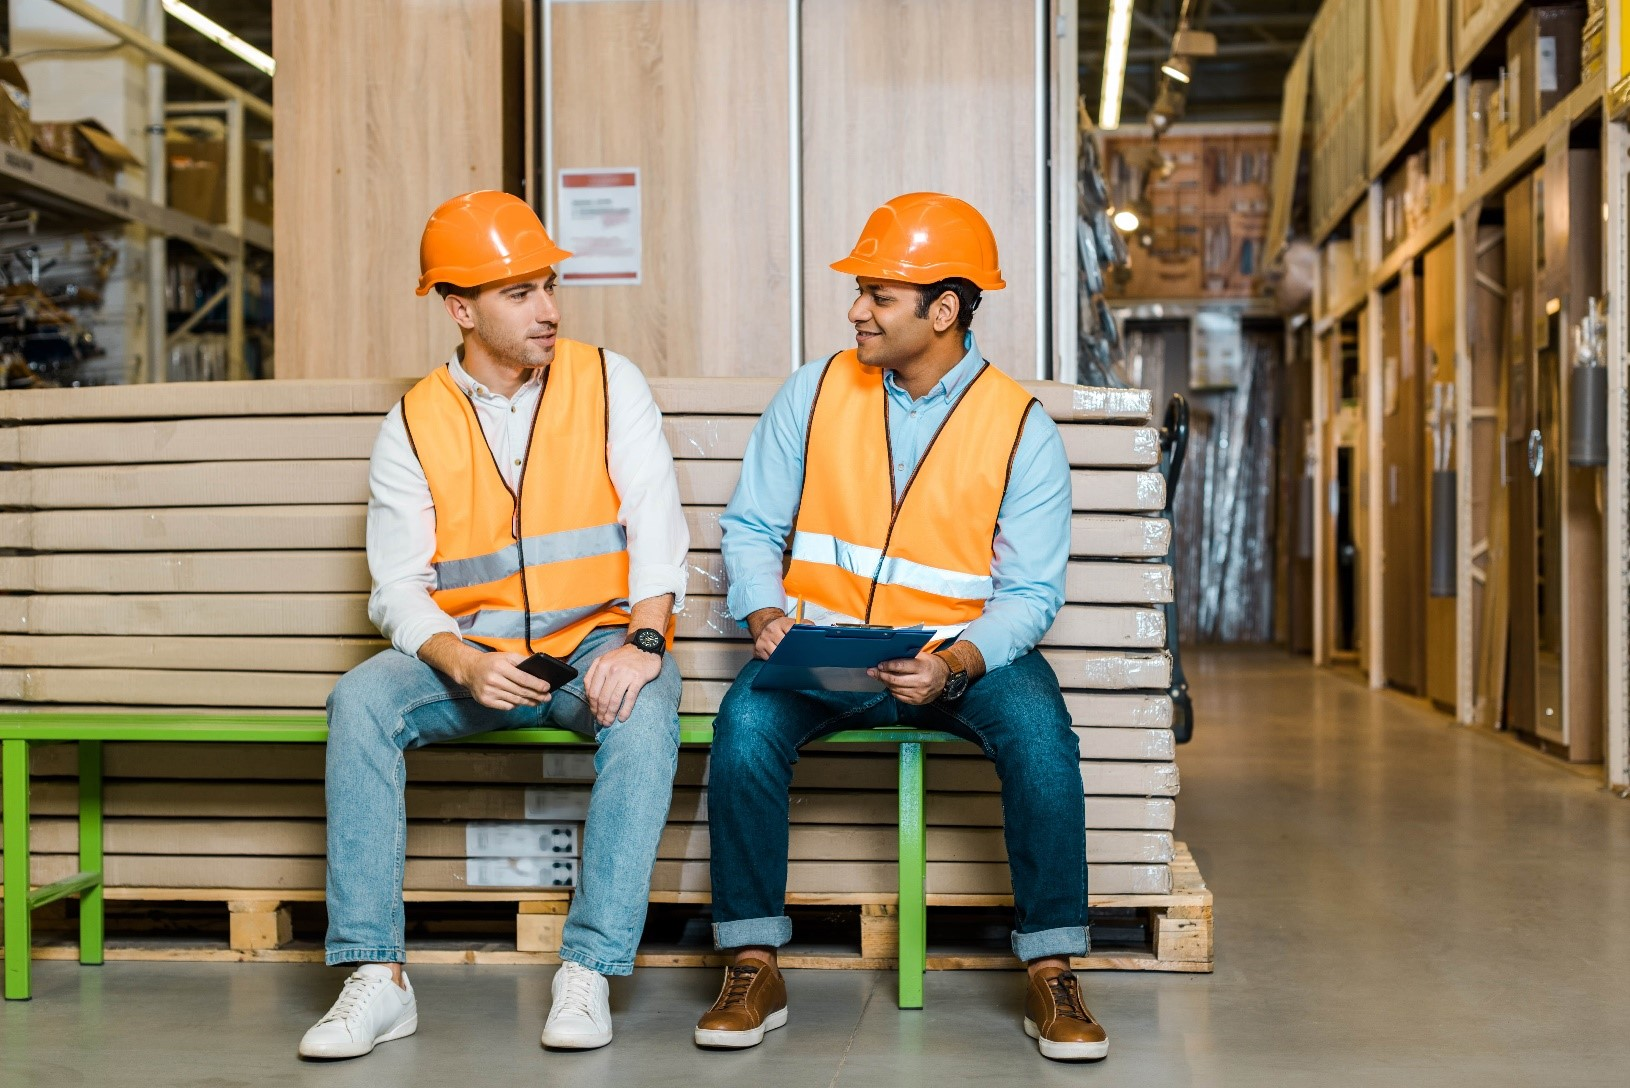 Two warehouse workers discuss health and safety practices